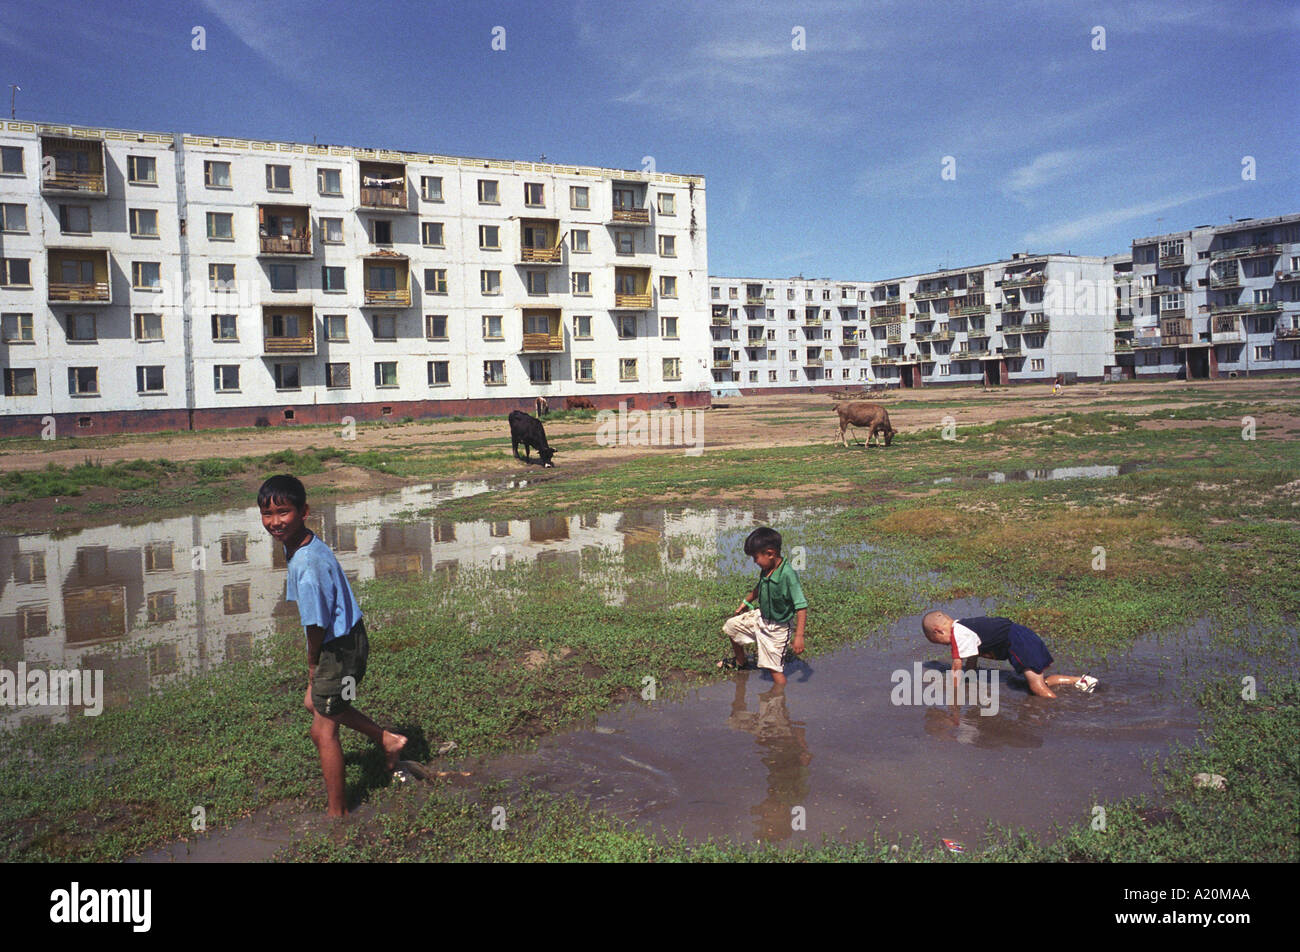 Children play in puddles of water with cows grazing nearby, Darkhan, Mongolia. Stock Photo